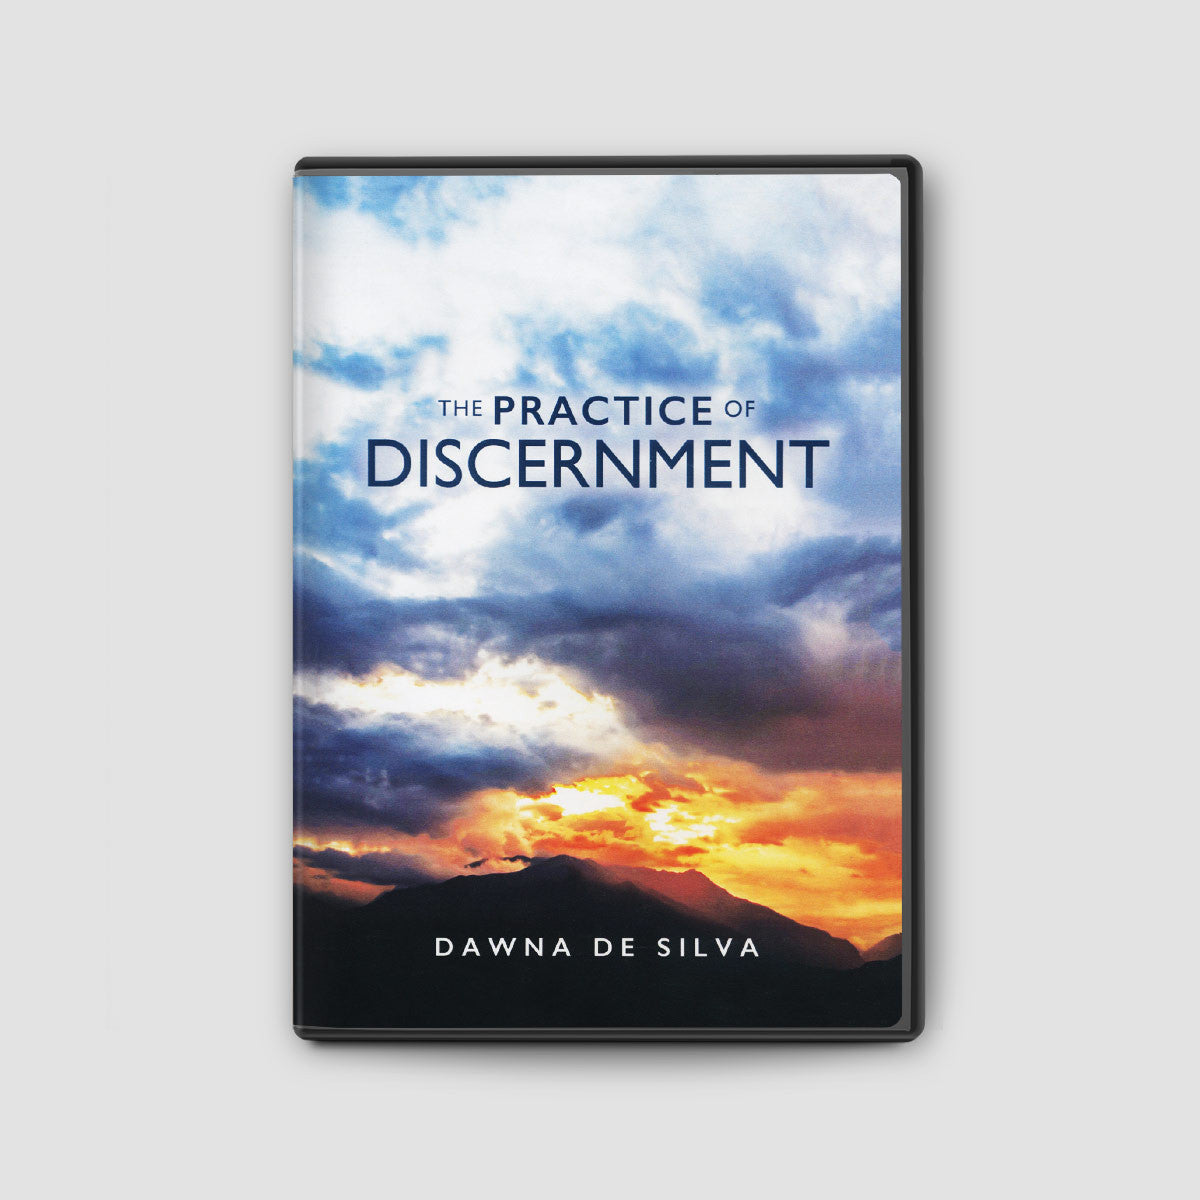 The Practice of Discernment